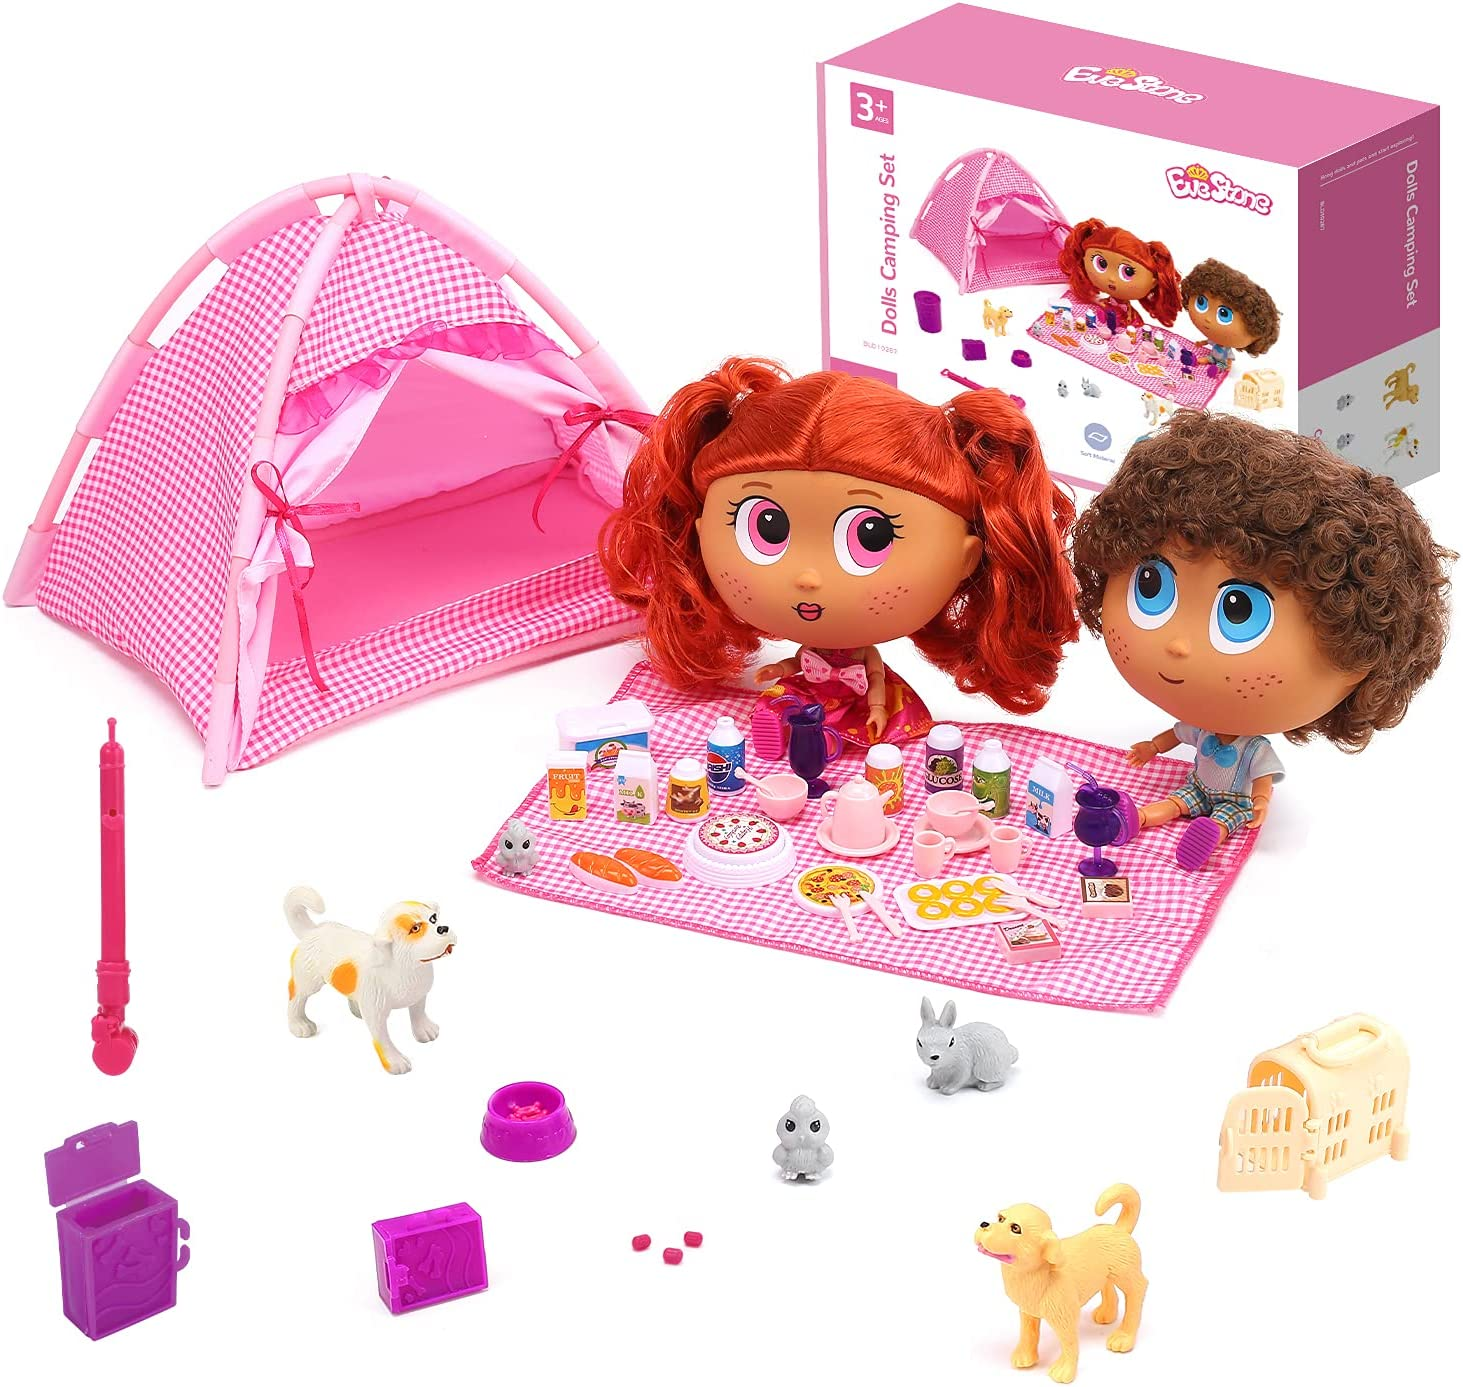 EveStone 56PCS Baby Dolls and Camping Playset Toy for Girls, 2 Dolls (7.5″) & Accessories,Doll Tent,5 Pets Care Set,Pretend Play Food,Toy Tea Set,2 Clothes for Dolls,Gift for 3+ Years Old Toddler Kids